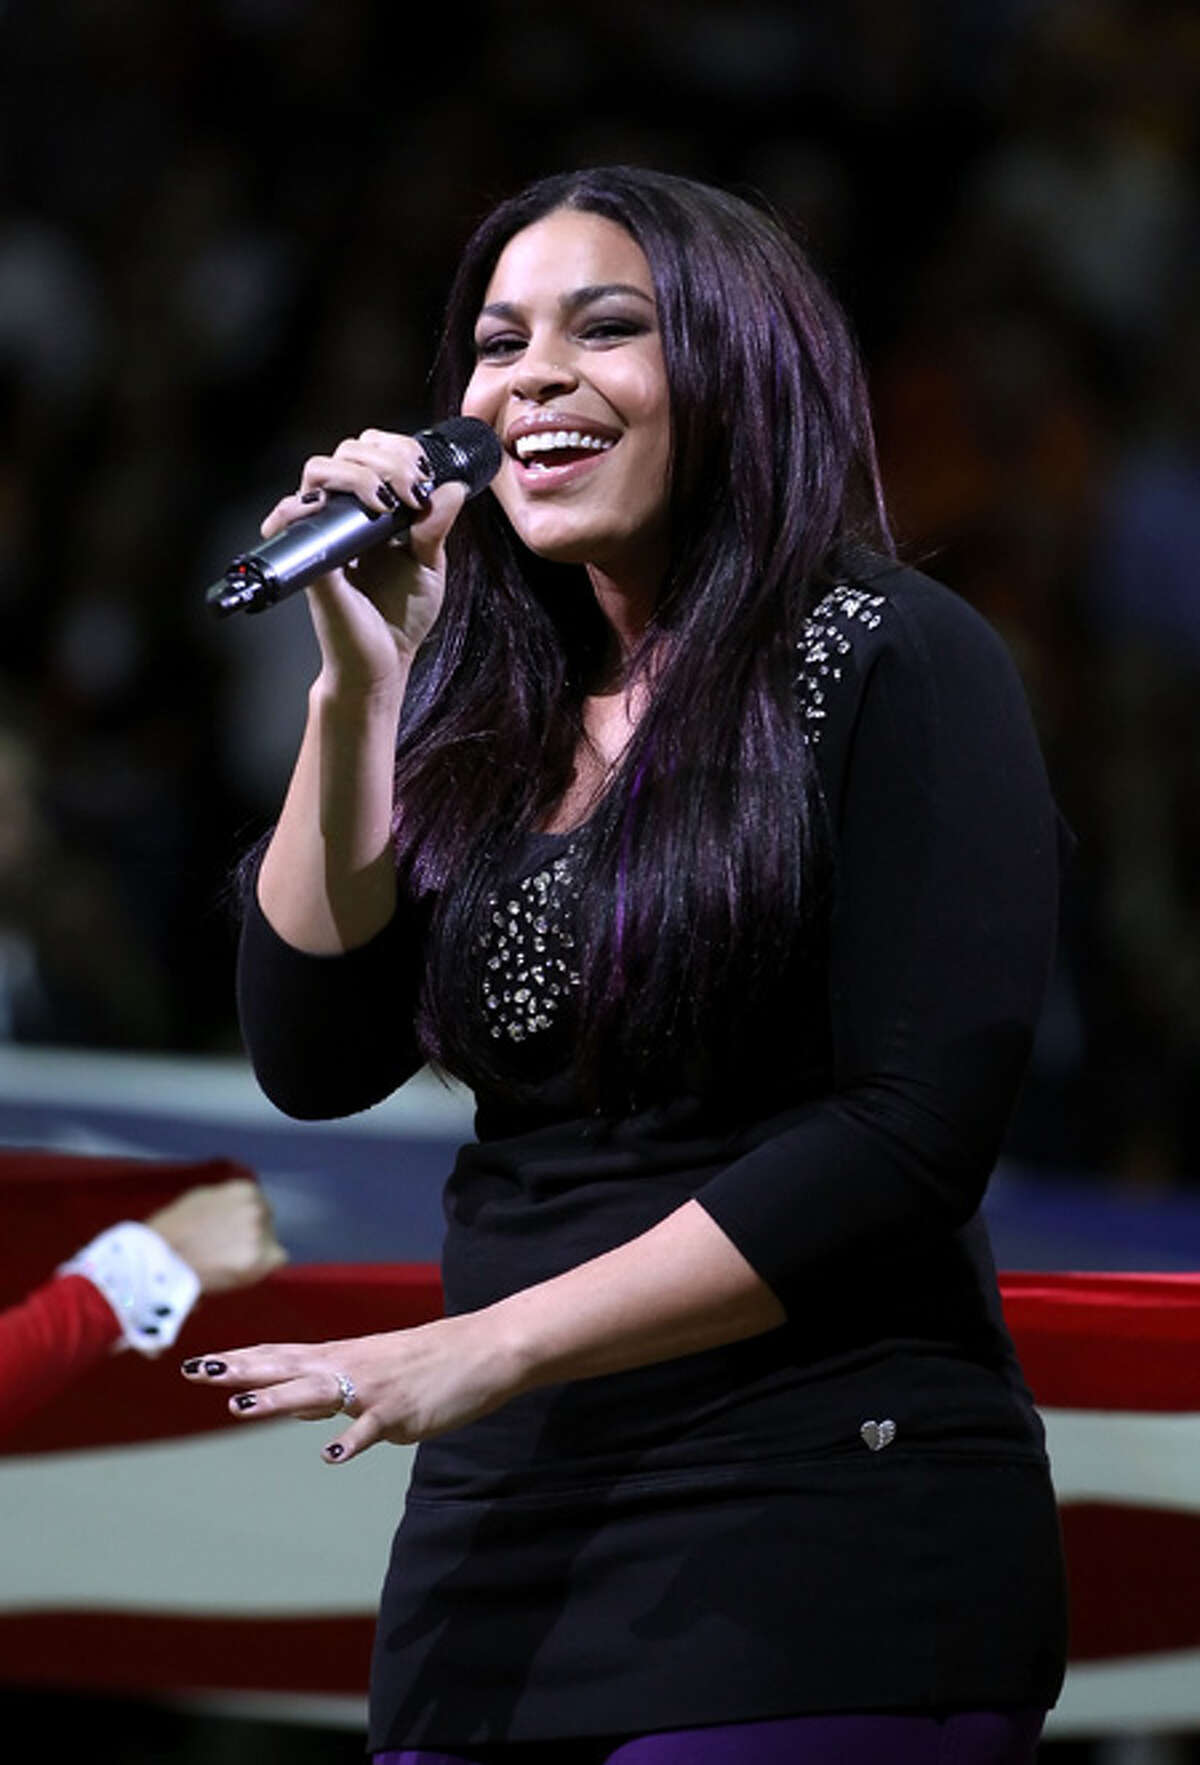 Singer Jordin Sparks performs the National Anthem before the NBA game between the Miami Heat and the Phoenix Suns at US Airways Center in Phoenix, Arizona.